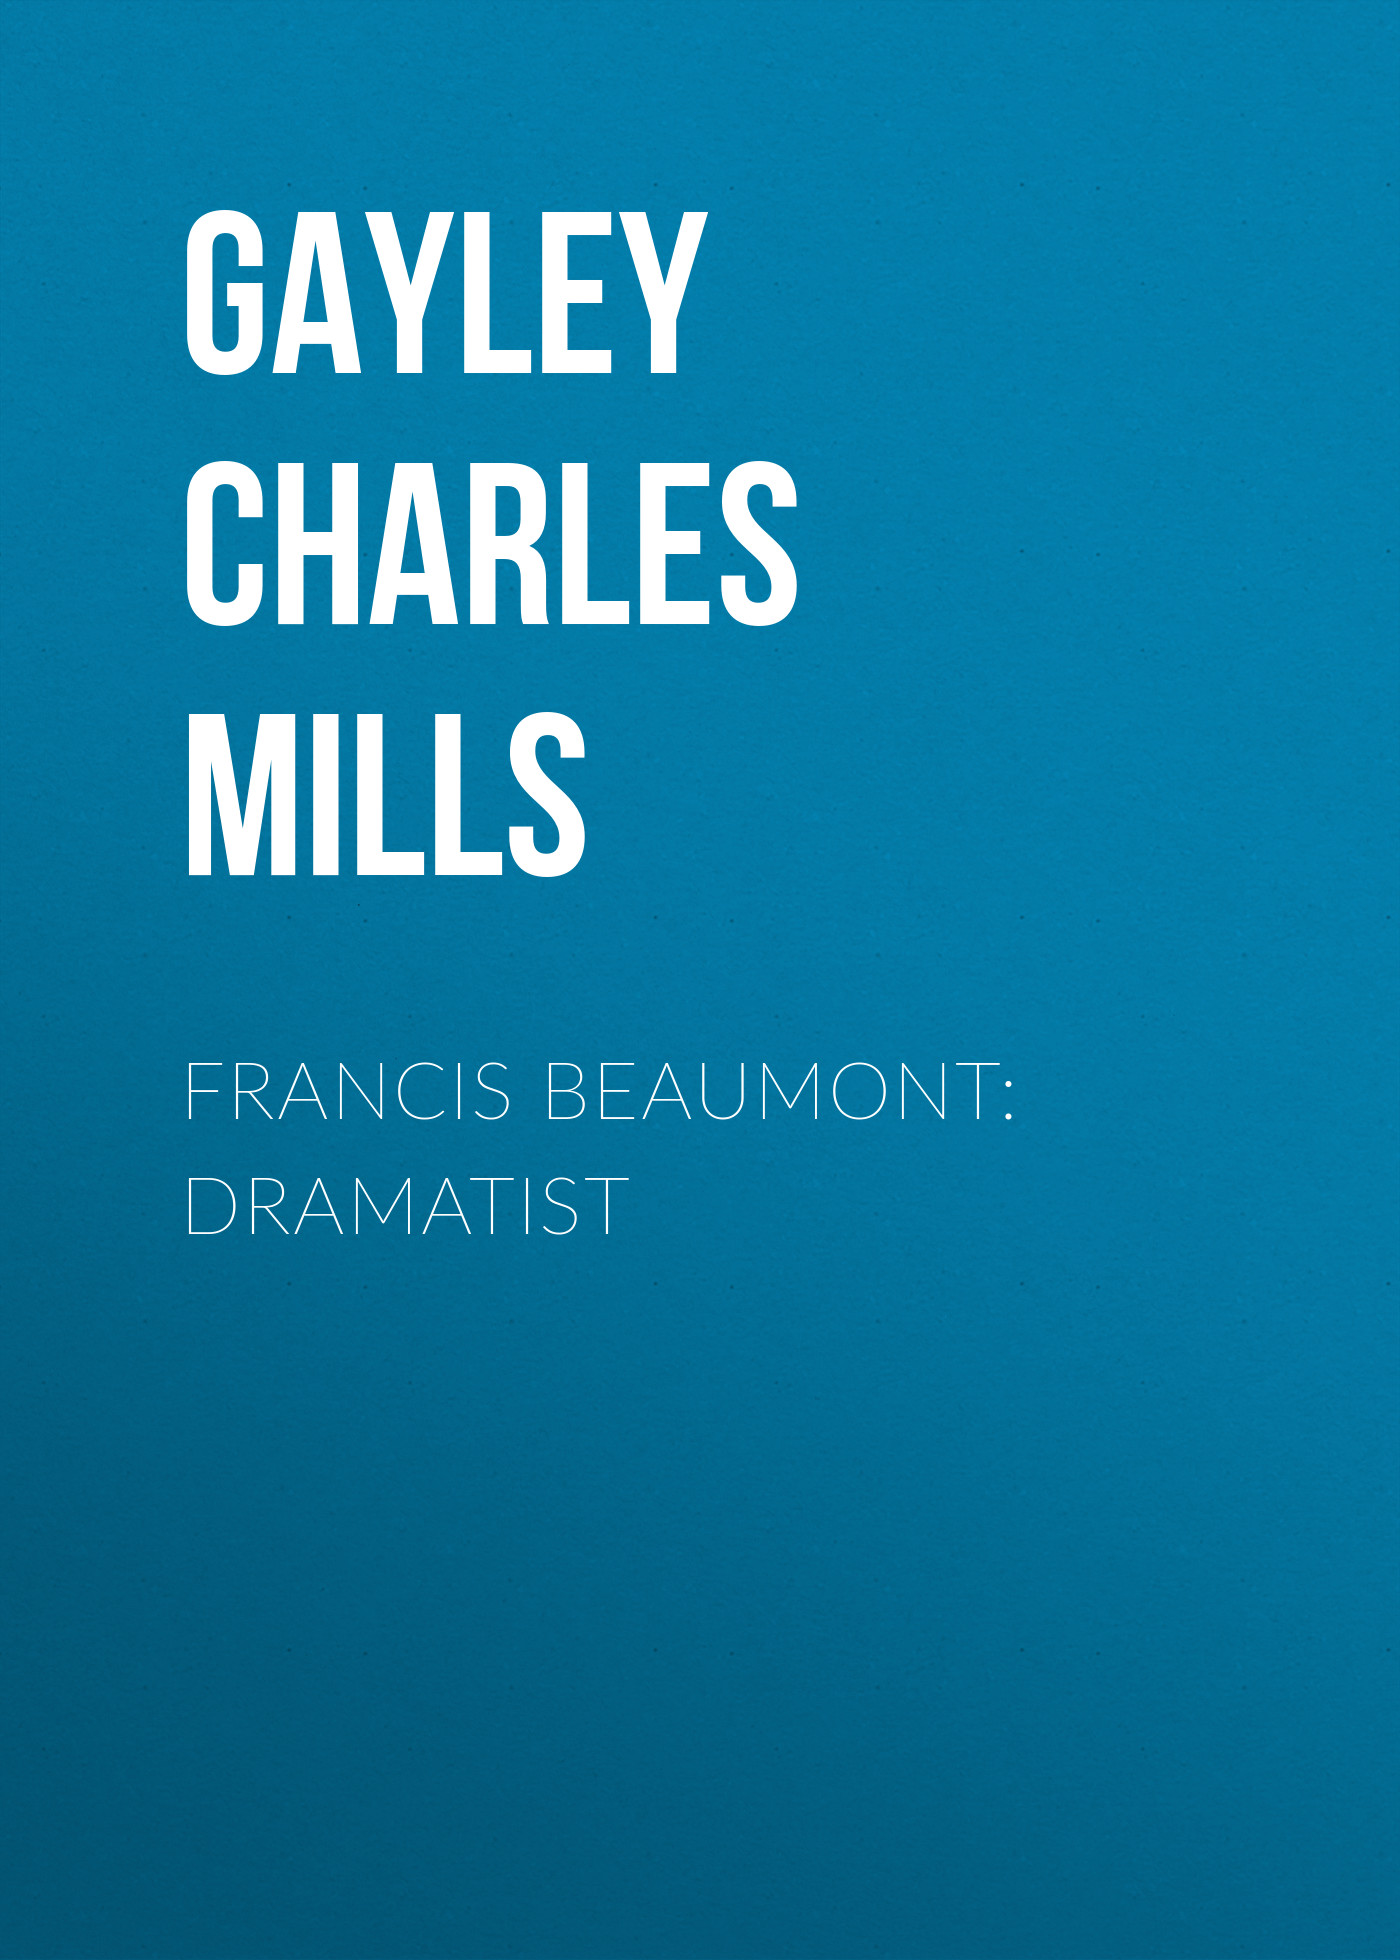 Gayley Charles Mills Francis Beaumont: Dramatist hidesign business beaumont 01